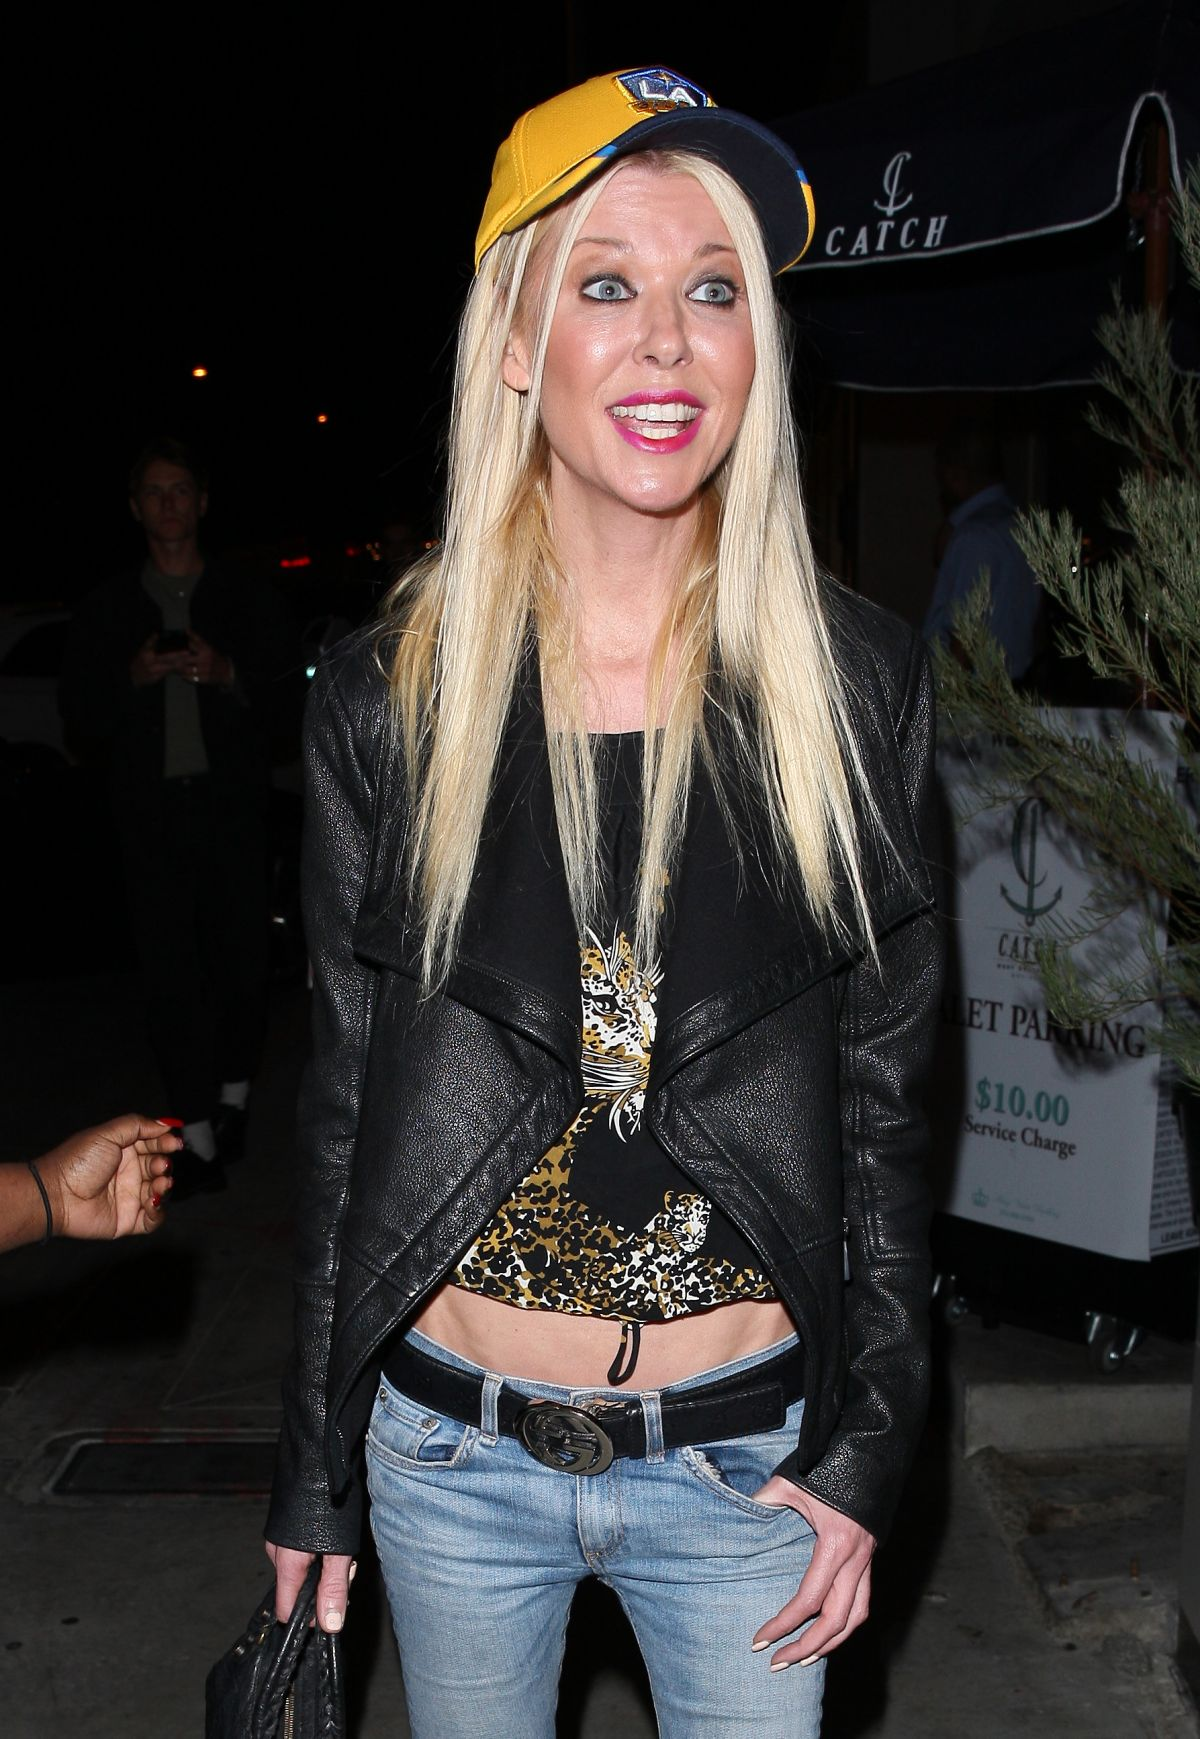 Tara Reid At Catch La In West Hollywood 10 26 2016